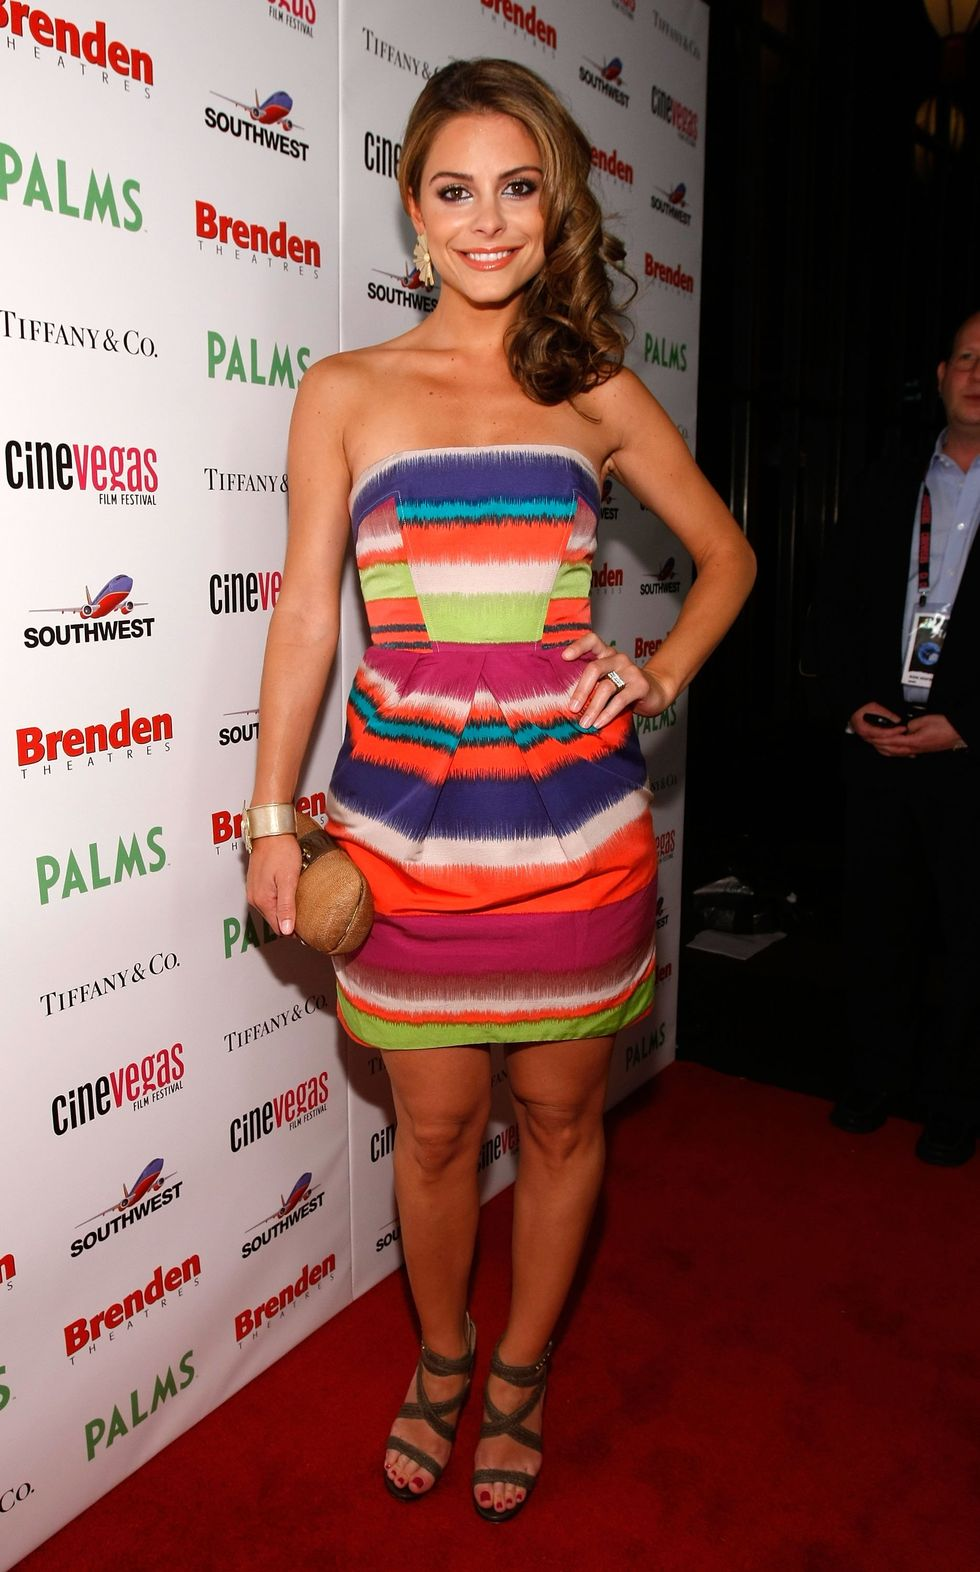 maria-menounos-11th-annual-cinevegas-film-festival-in-las-vegas-01